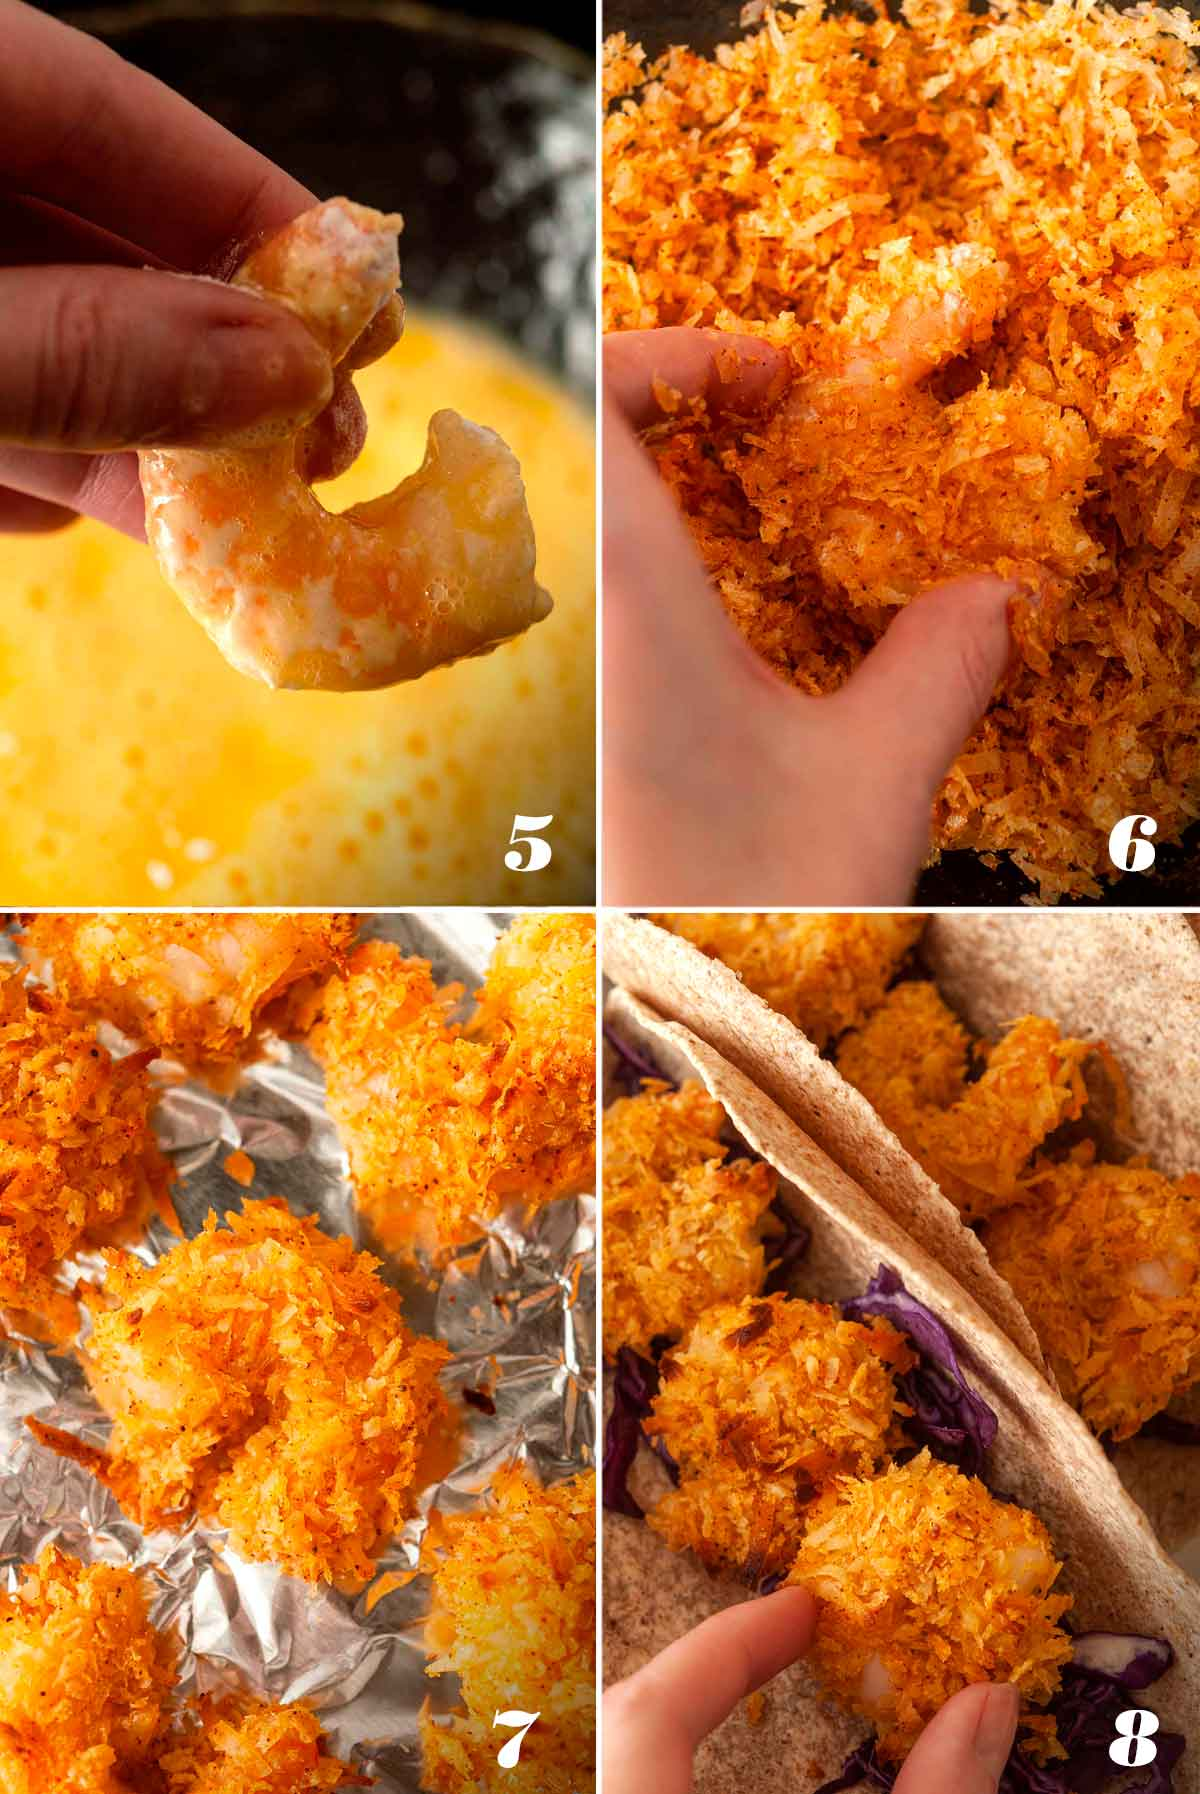 A collage of 4 numbered images showing how to dip and bake coconut shrimp.